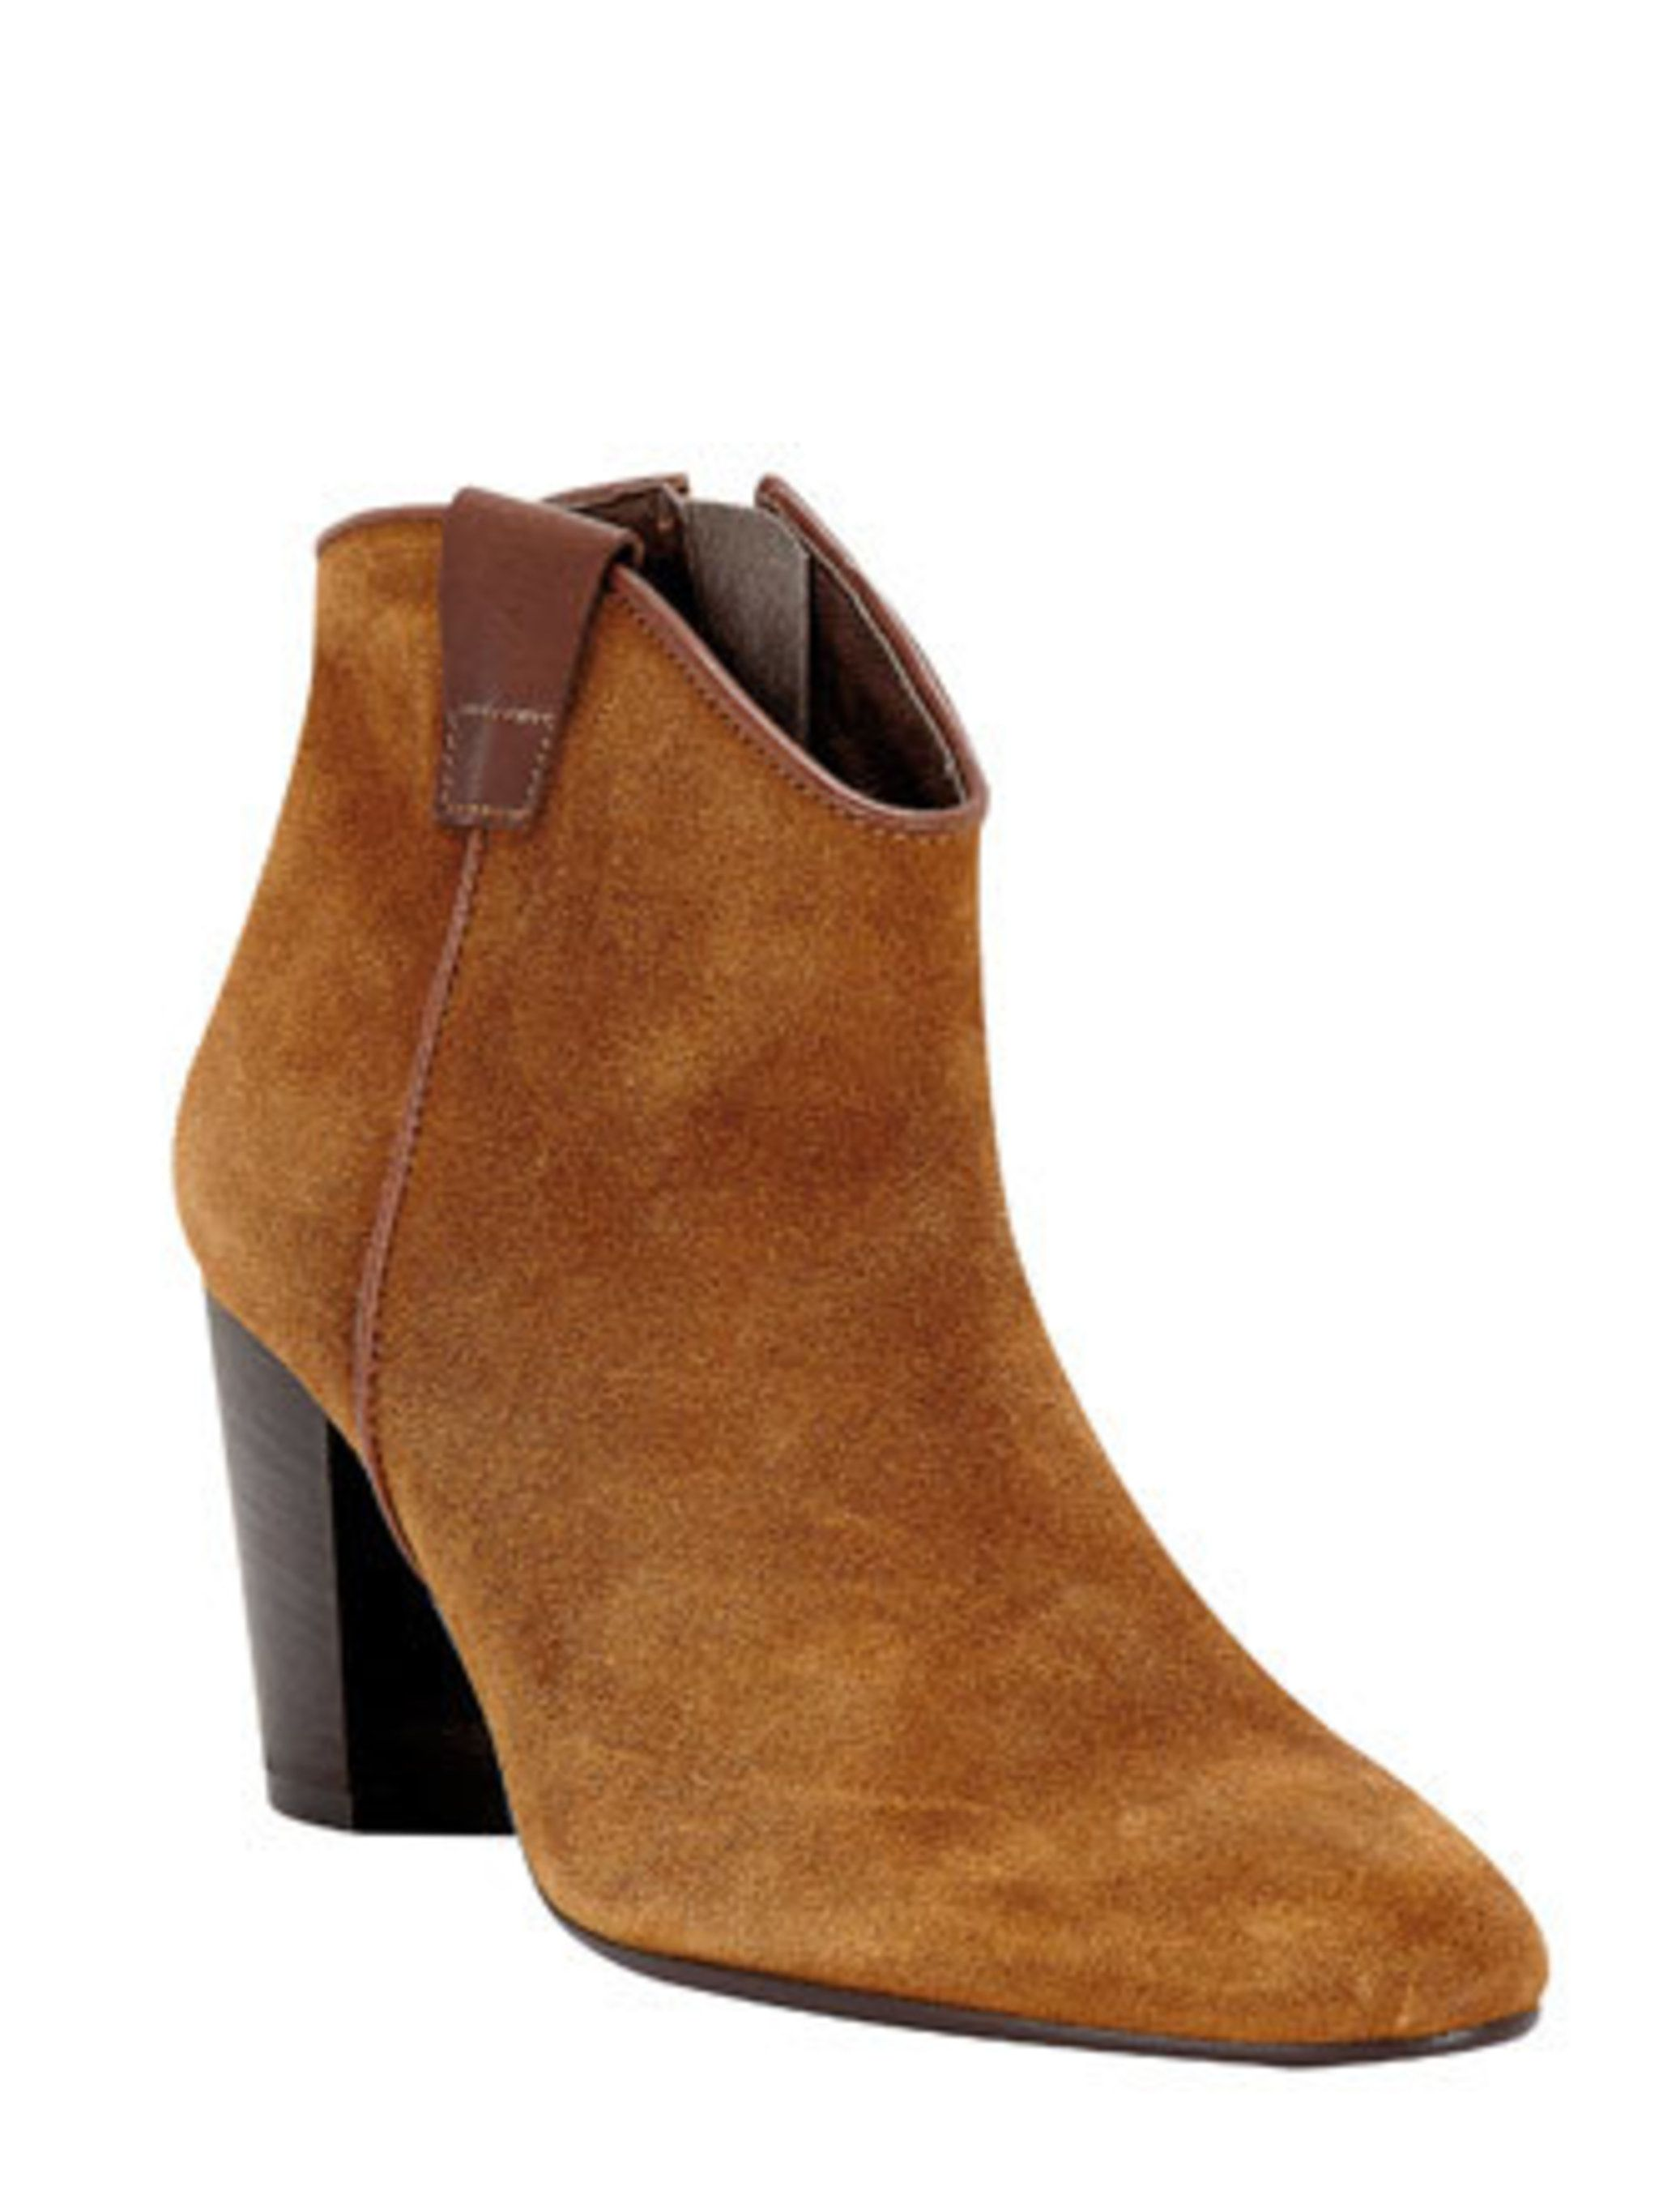 <p>ELLE loves these boots. They are perfect for pairing with denim shorts, tea dresses and skinny jeans. Snap them up before we do.</p><p>Ankle boots, £65 by Oasis</p>